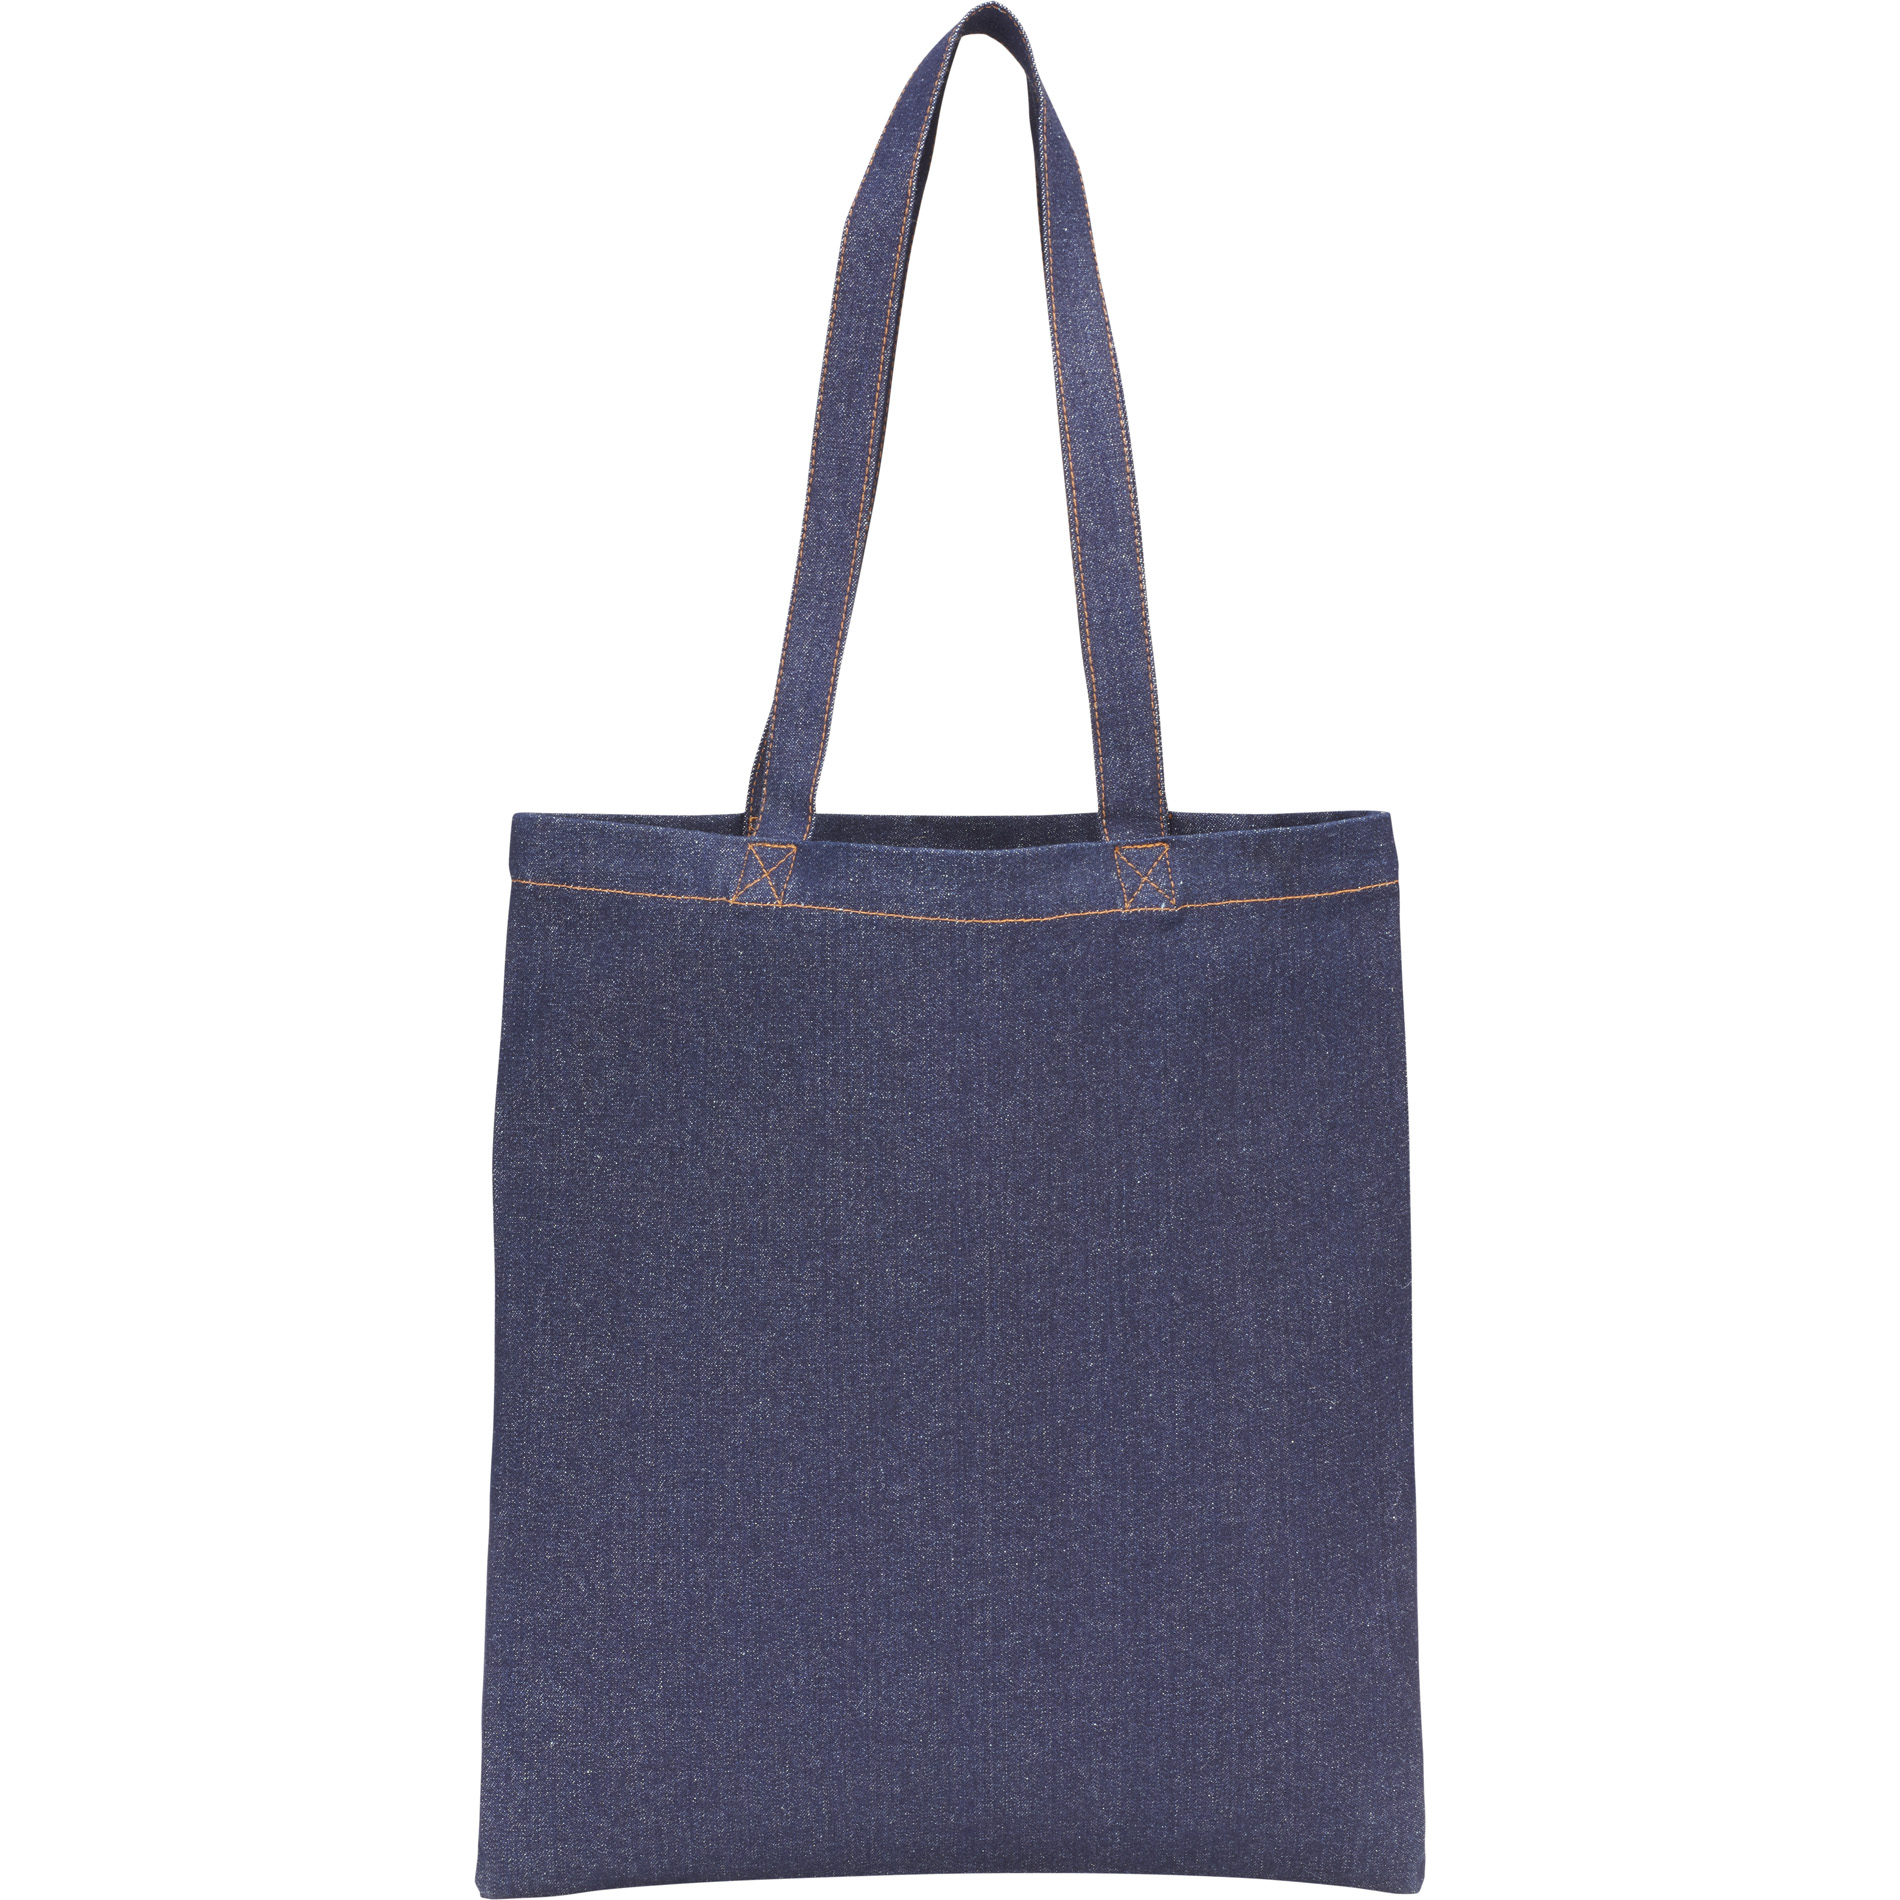 LEEDS 7900-99 - Demin Convention Tote